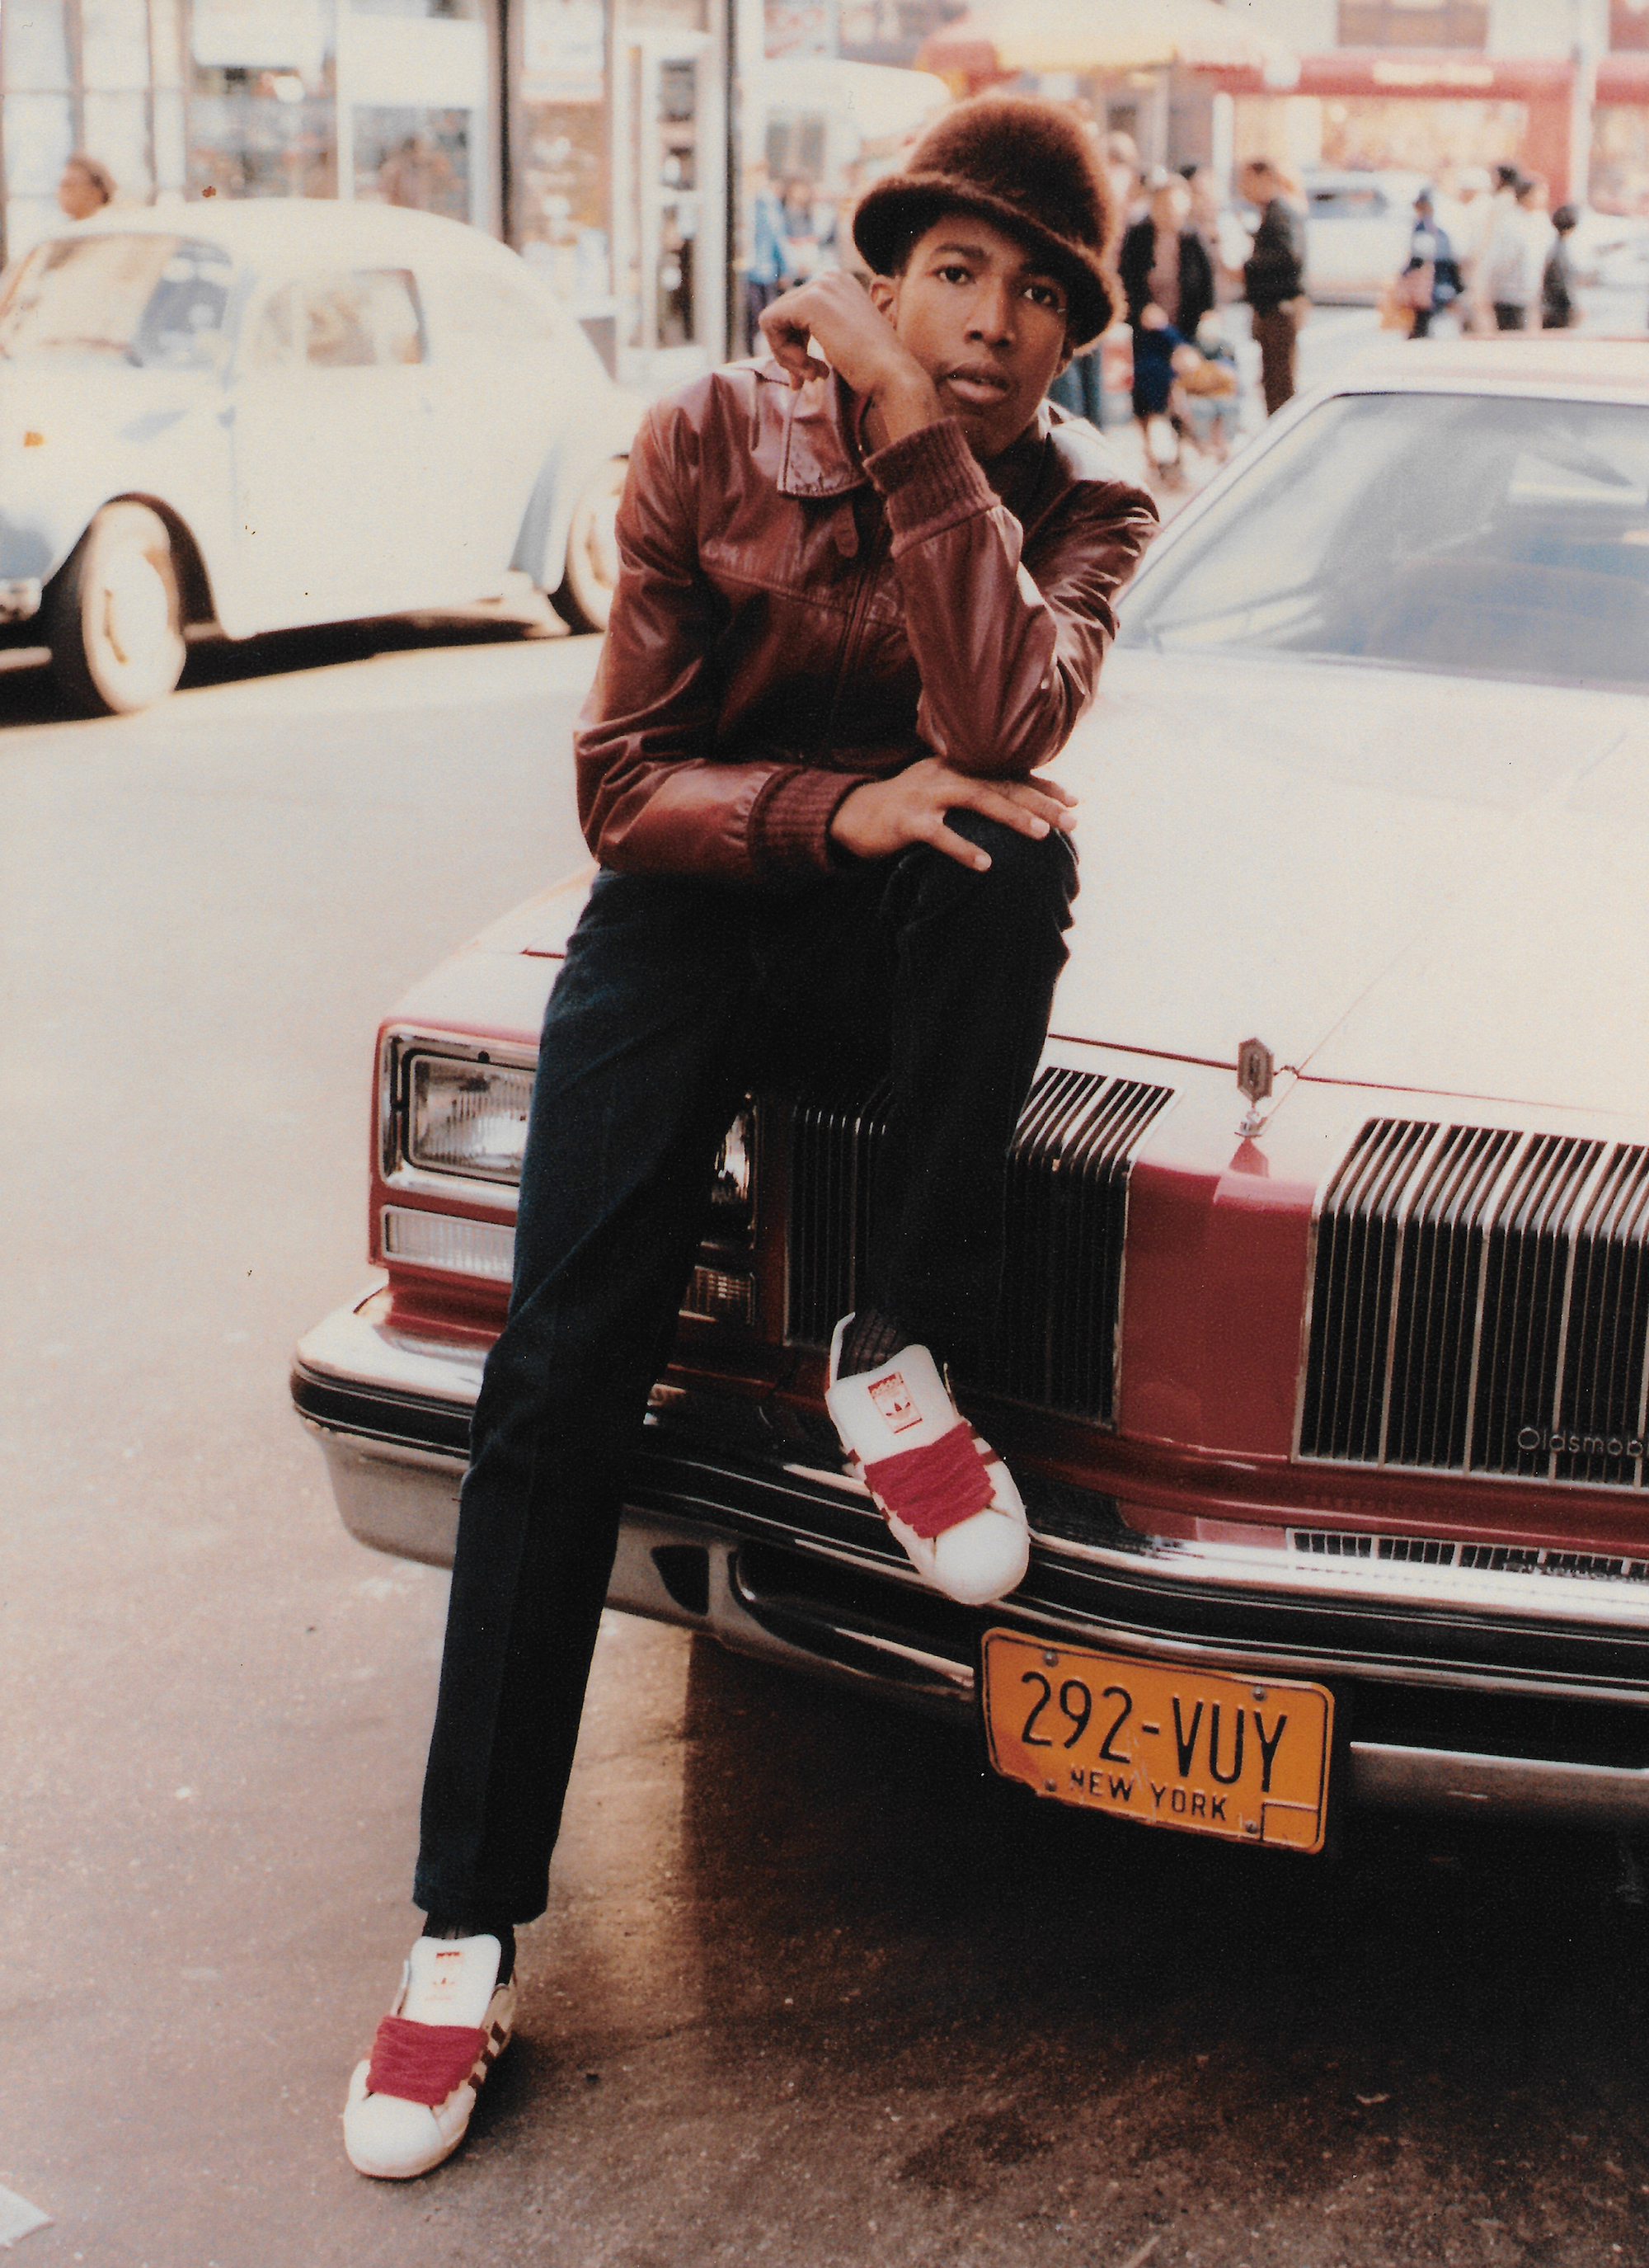 Jamel Shabazz vintage images bonnet car